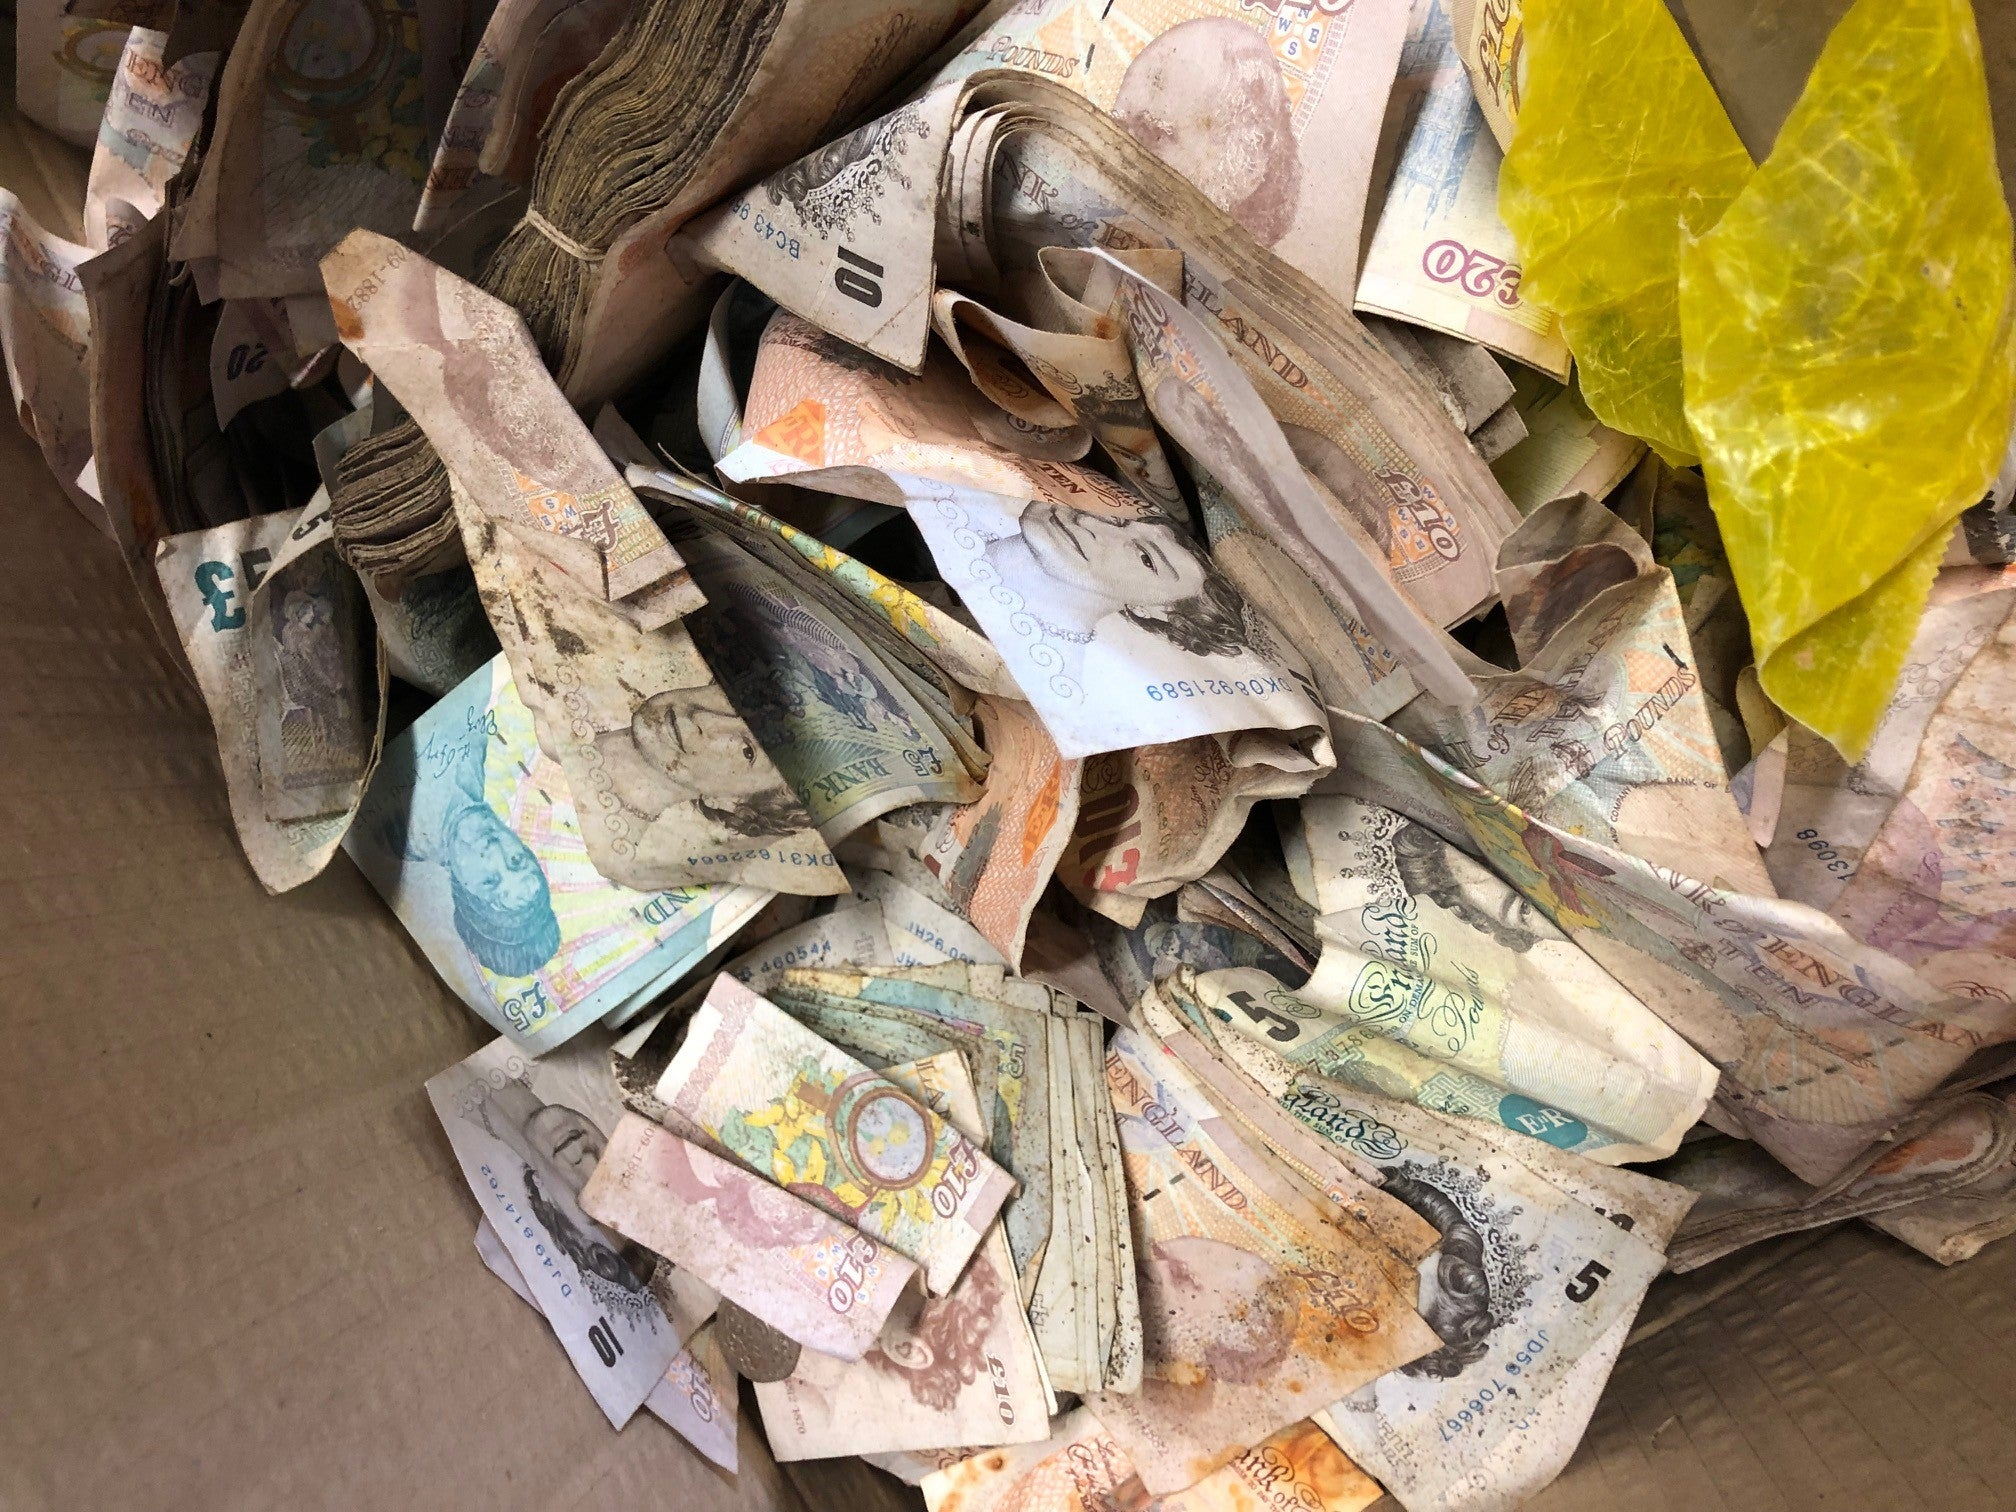 Scrapyard which found £20,000 in old safe to give cash to charity